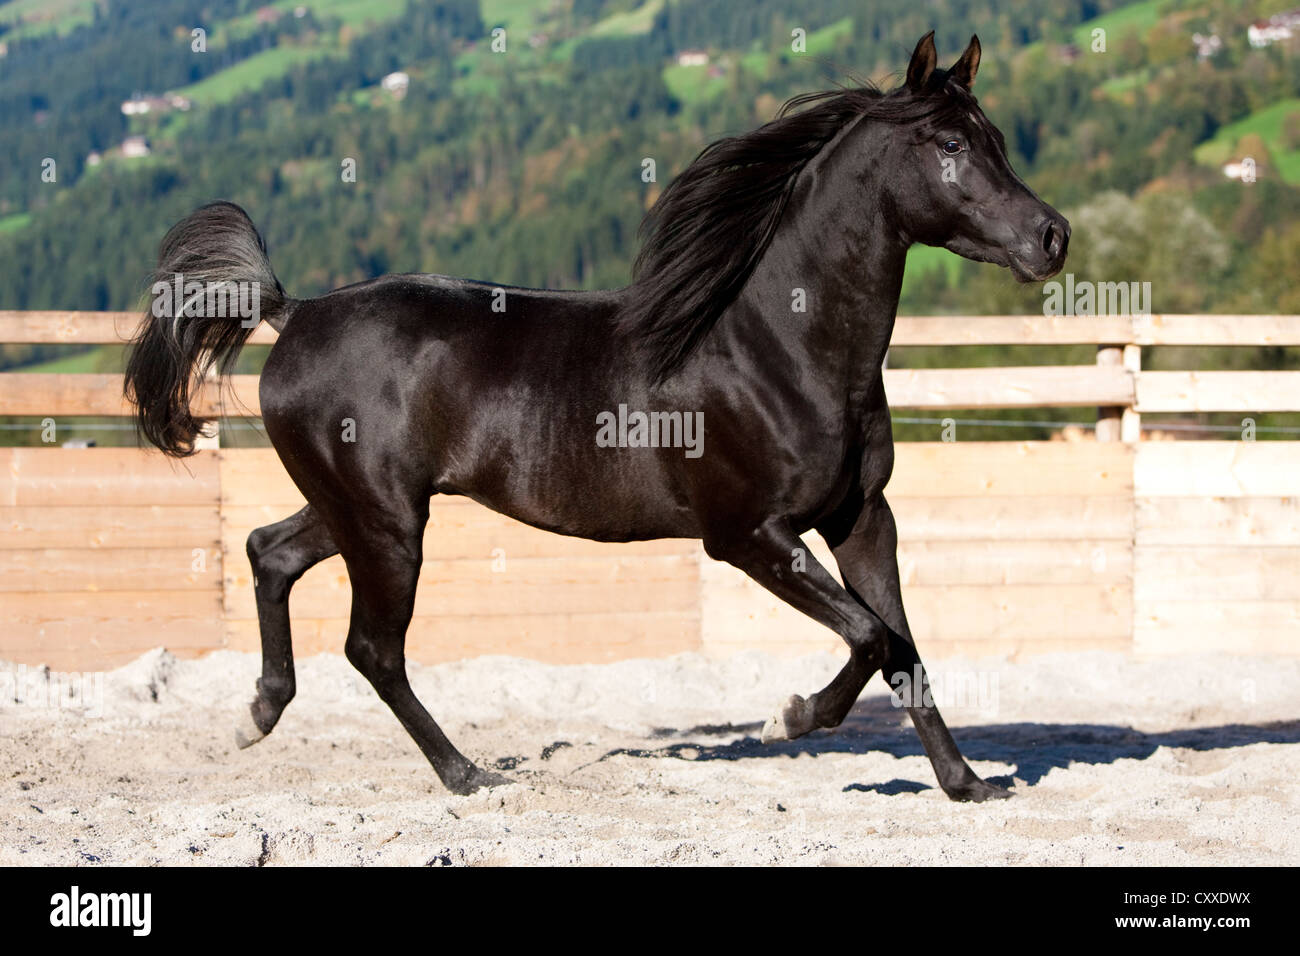 Black Arabian Horse High Resolution Stock Photography And Images Alamy